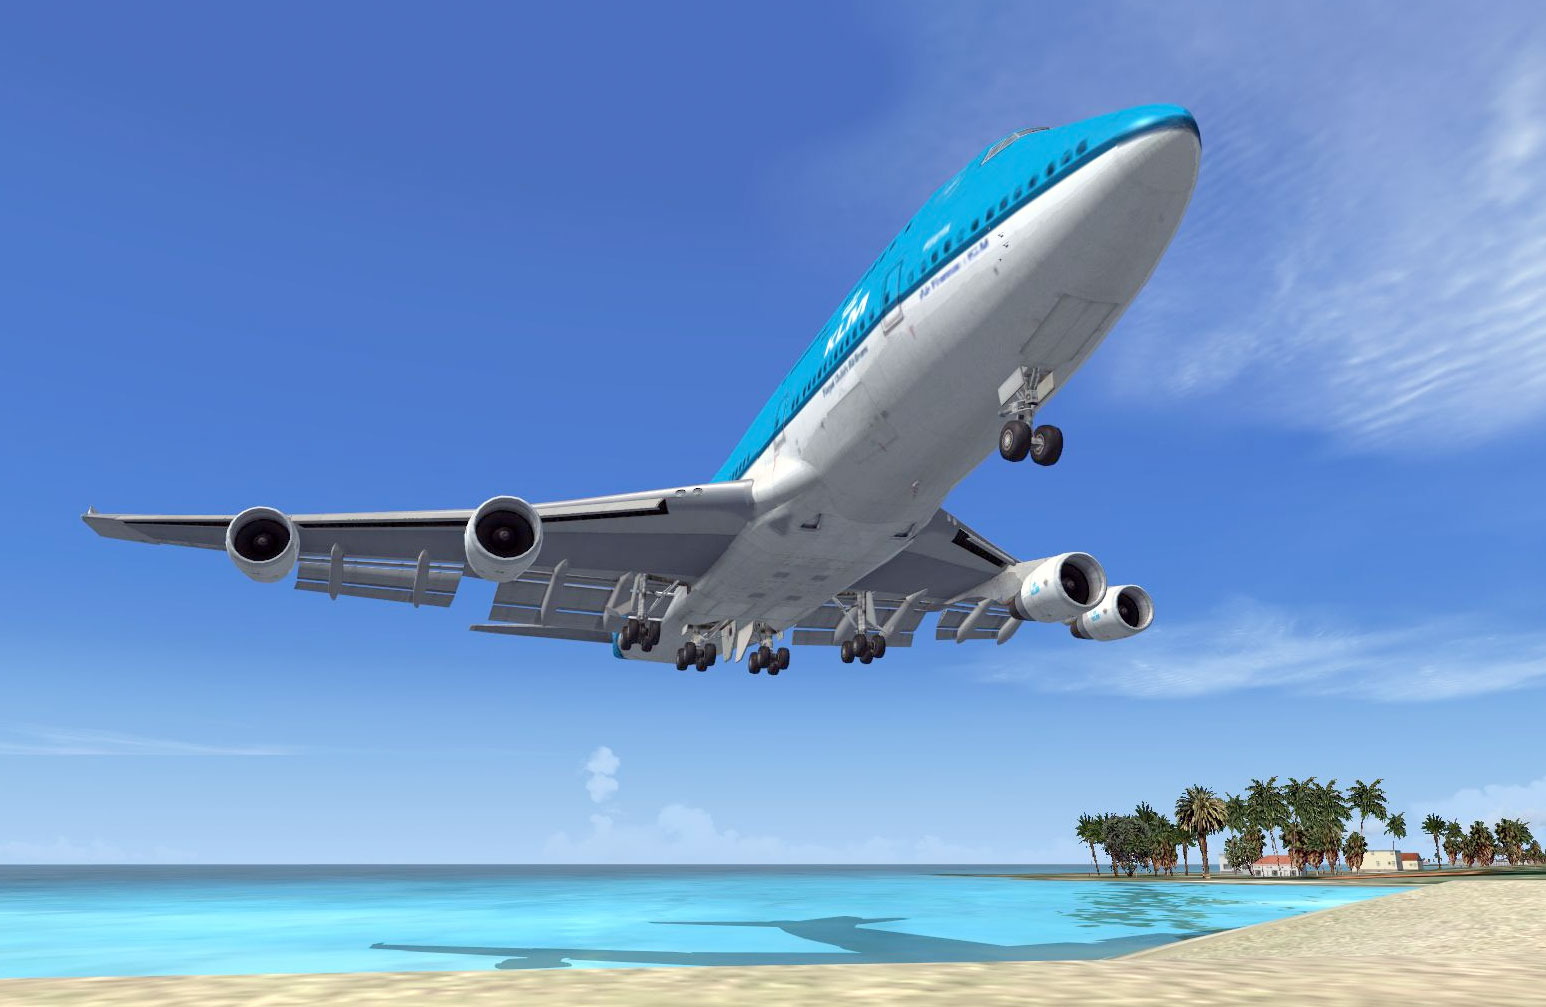 Flight Simulator X Wallpaper: Free Downloads For FSX, FS2004 & X-Plane